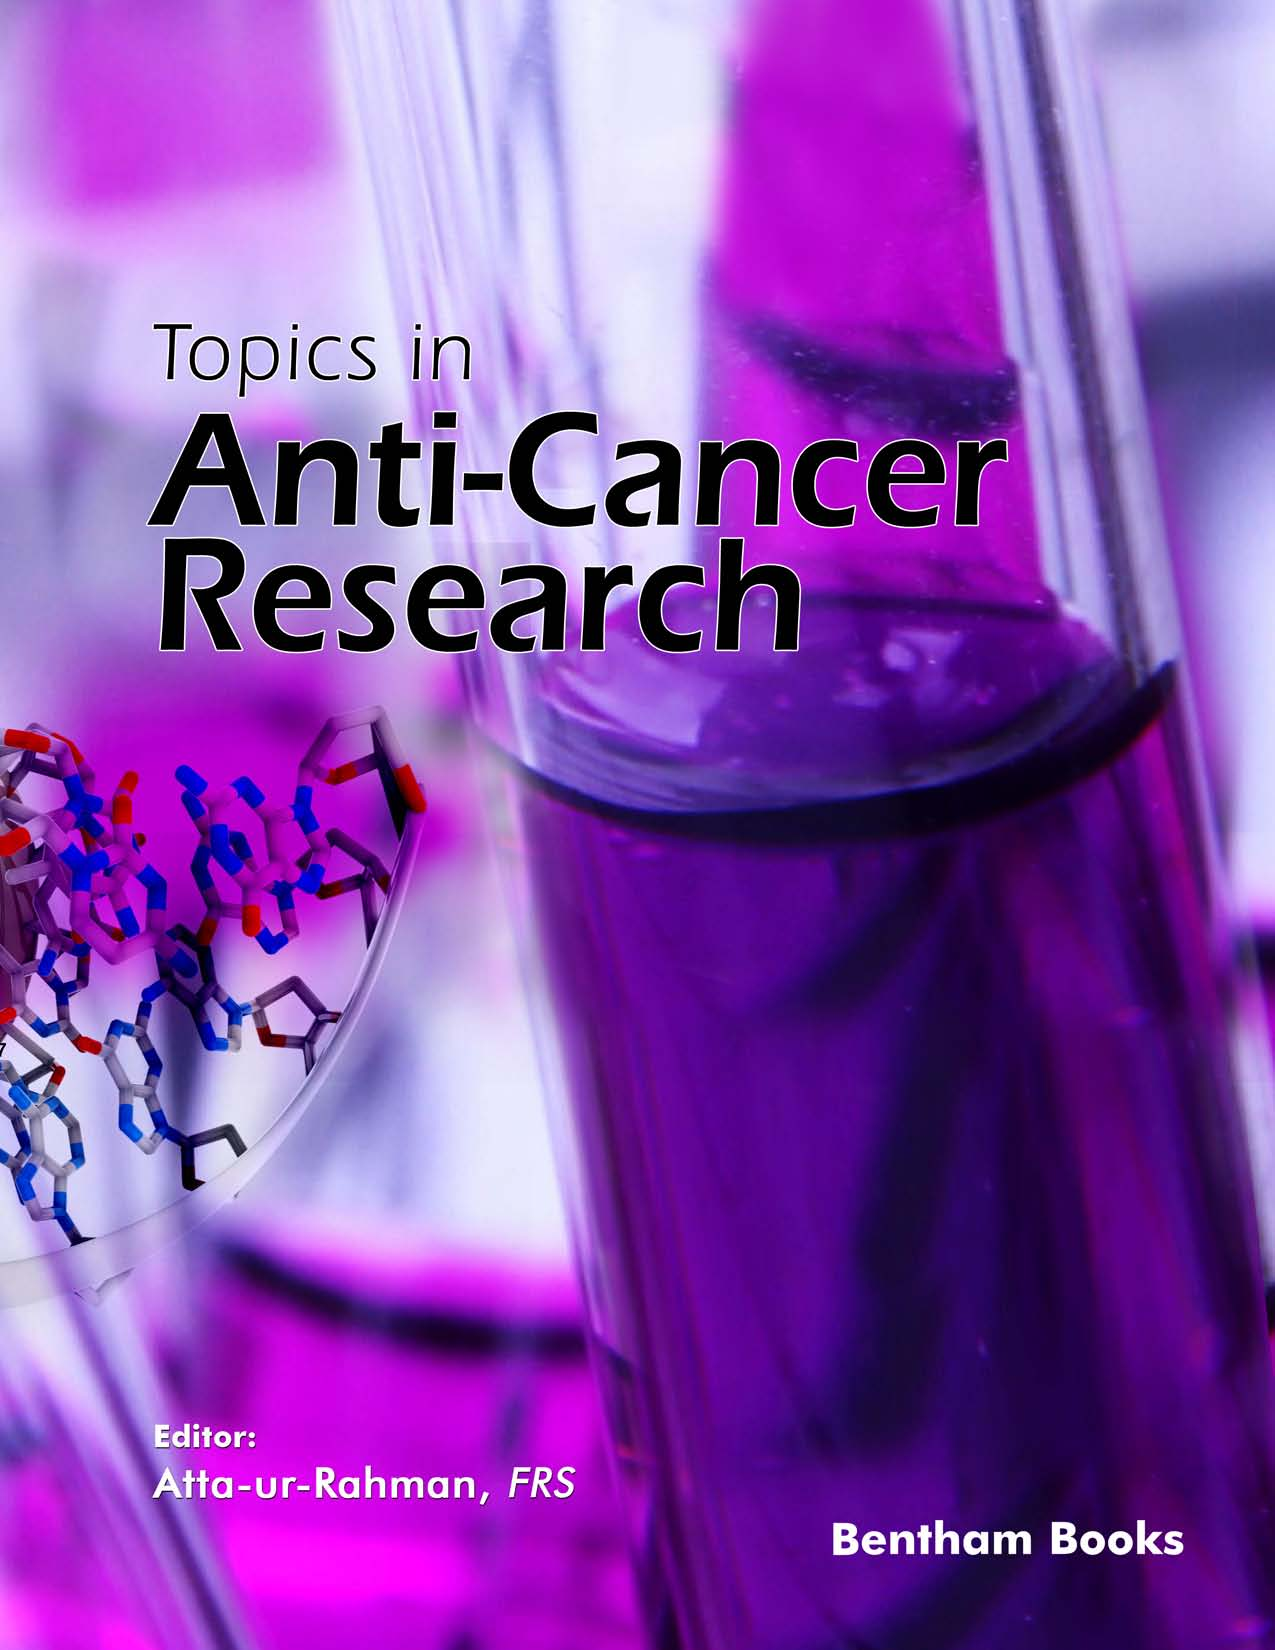 Topics in Anti-Cancer Research